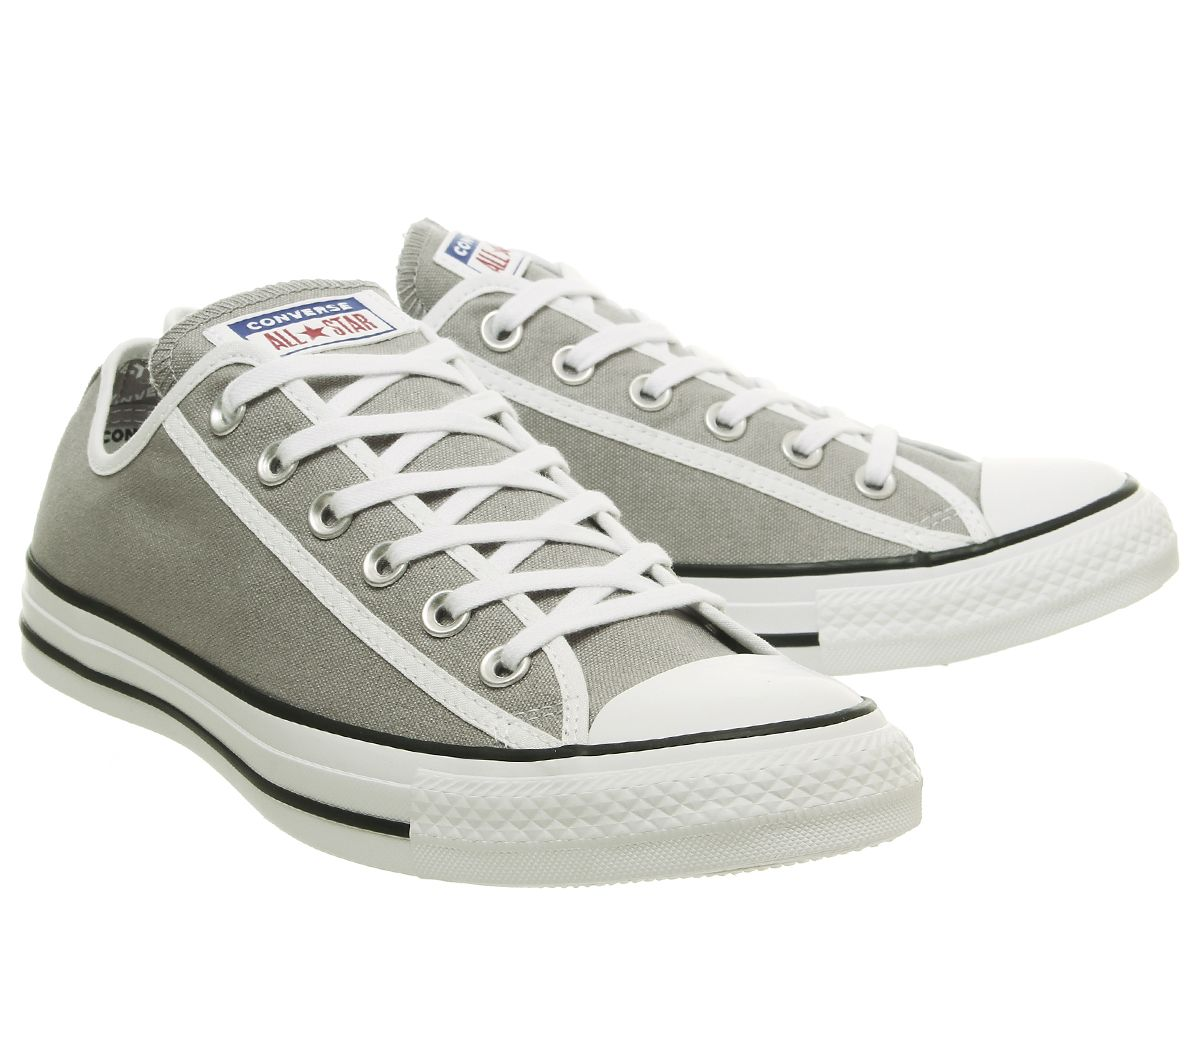 957800926 SENTINELLE Converse Converse All Star basse formateurs Dolphin formateurs  blanc chaussures